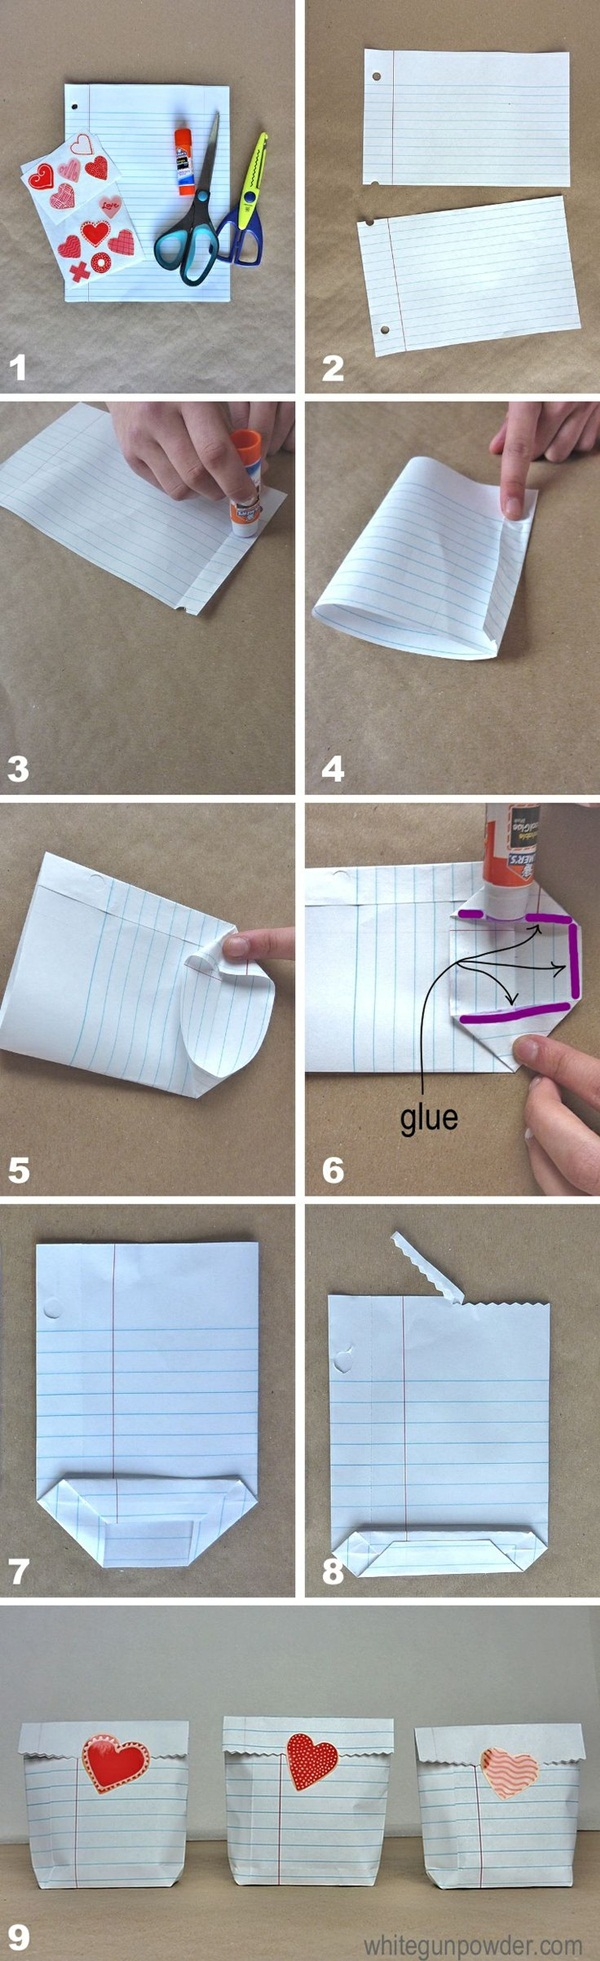 Paper Craft Ideas29